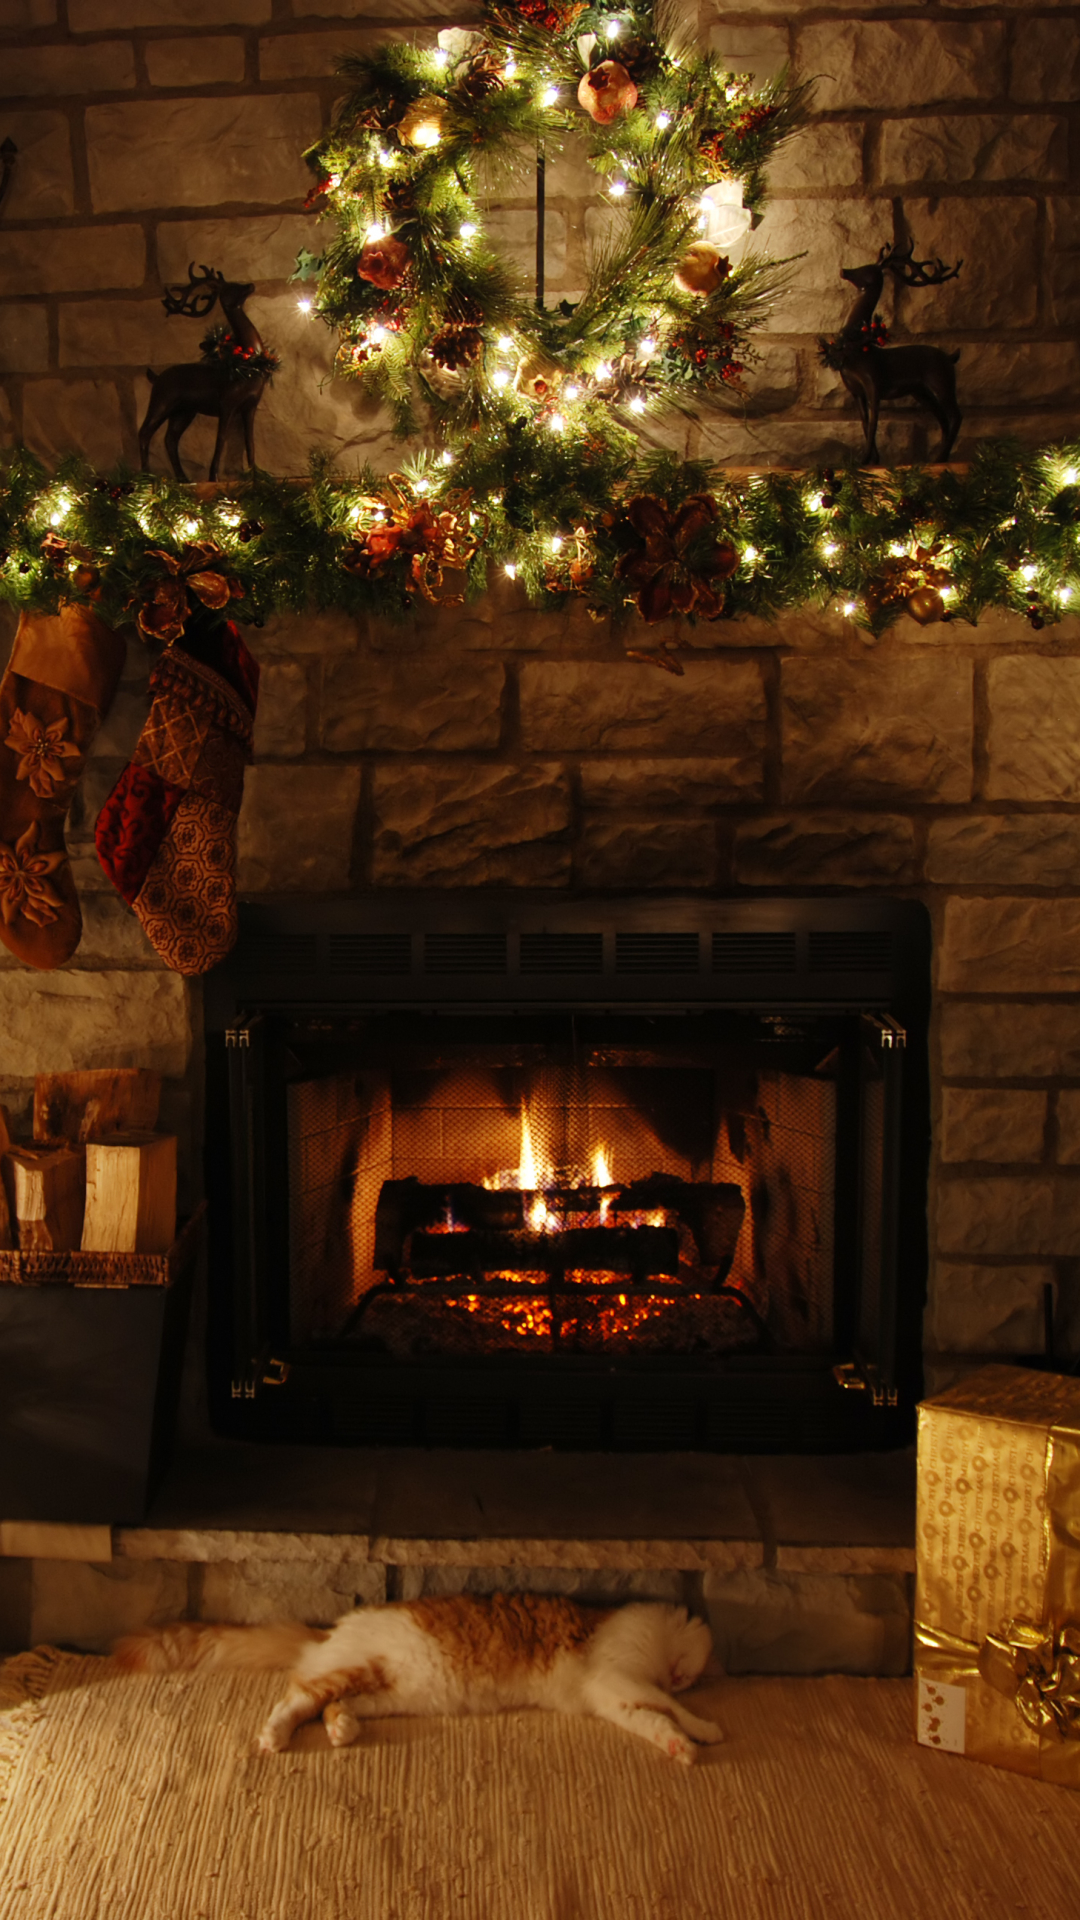 Christmas Fireplace Wallpaper Holiday Christmas 1080x1920 Wallpaper Id 704361 Mobile Abyss